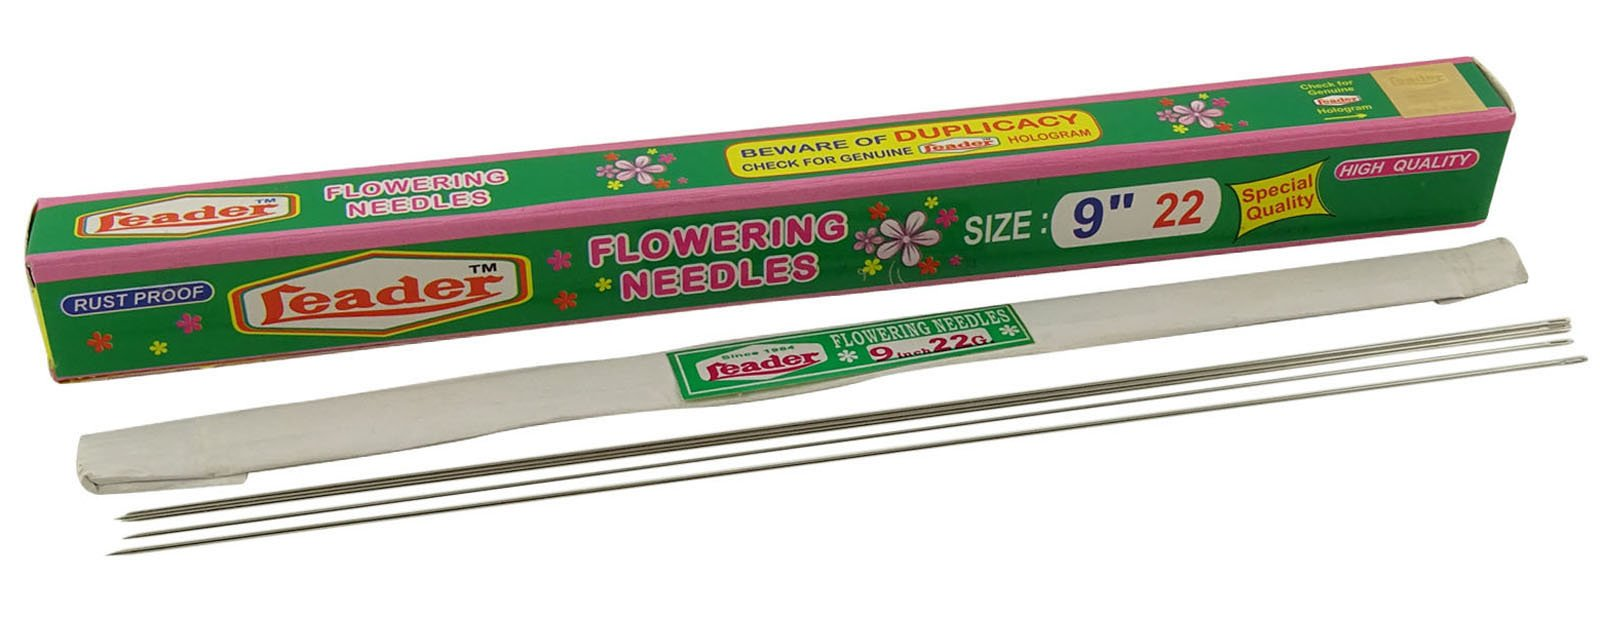 Leader-Sewing Rust Proof 9 Inches Needles For Making Flower Garland by Leader-Sewing